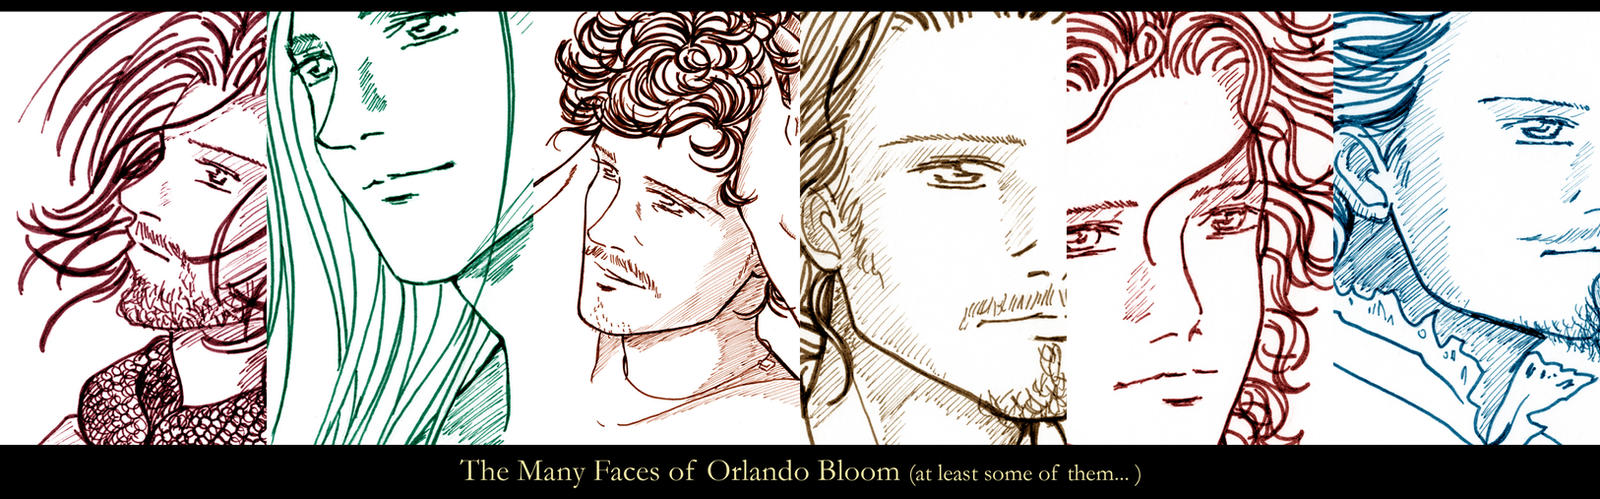 the many faces of Orlando Bloom by Neldorwen